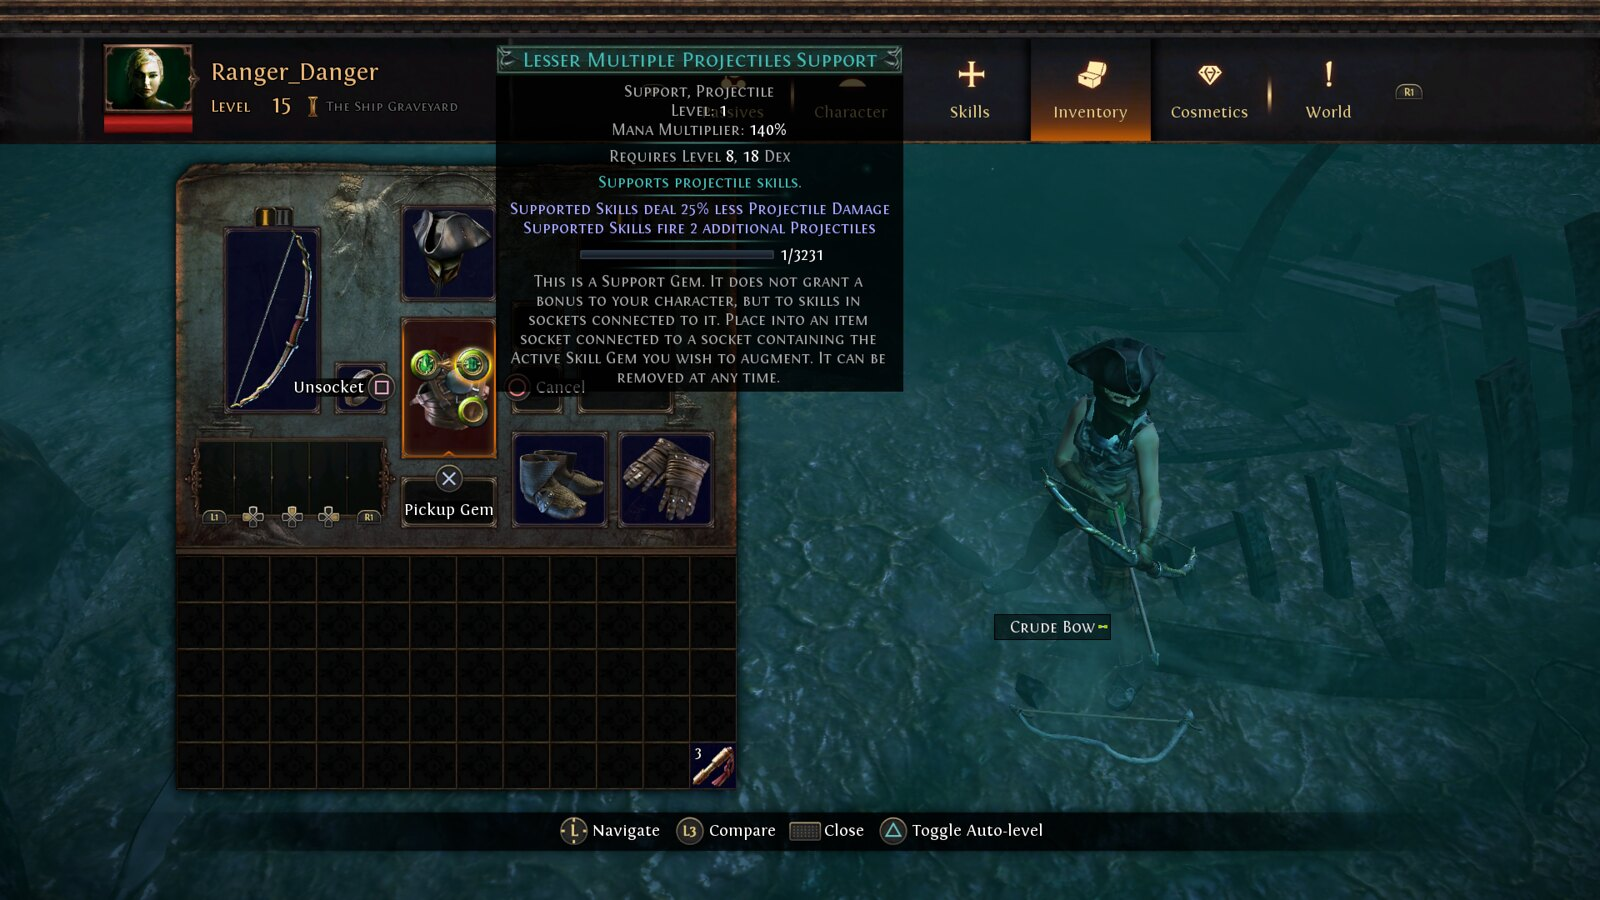 47385421142 26cac8c342 h - 10 Tipps für Path of Exile